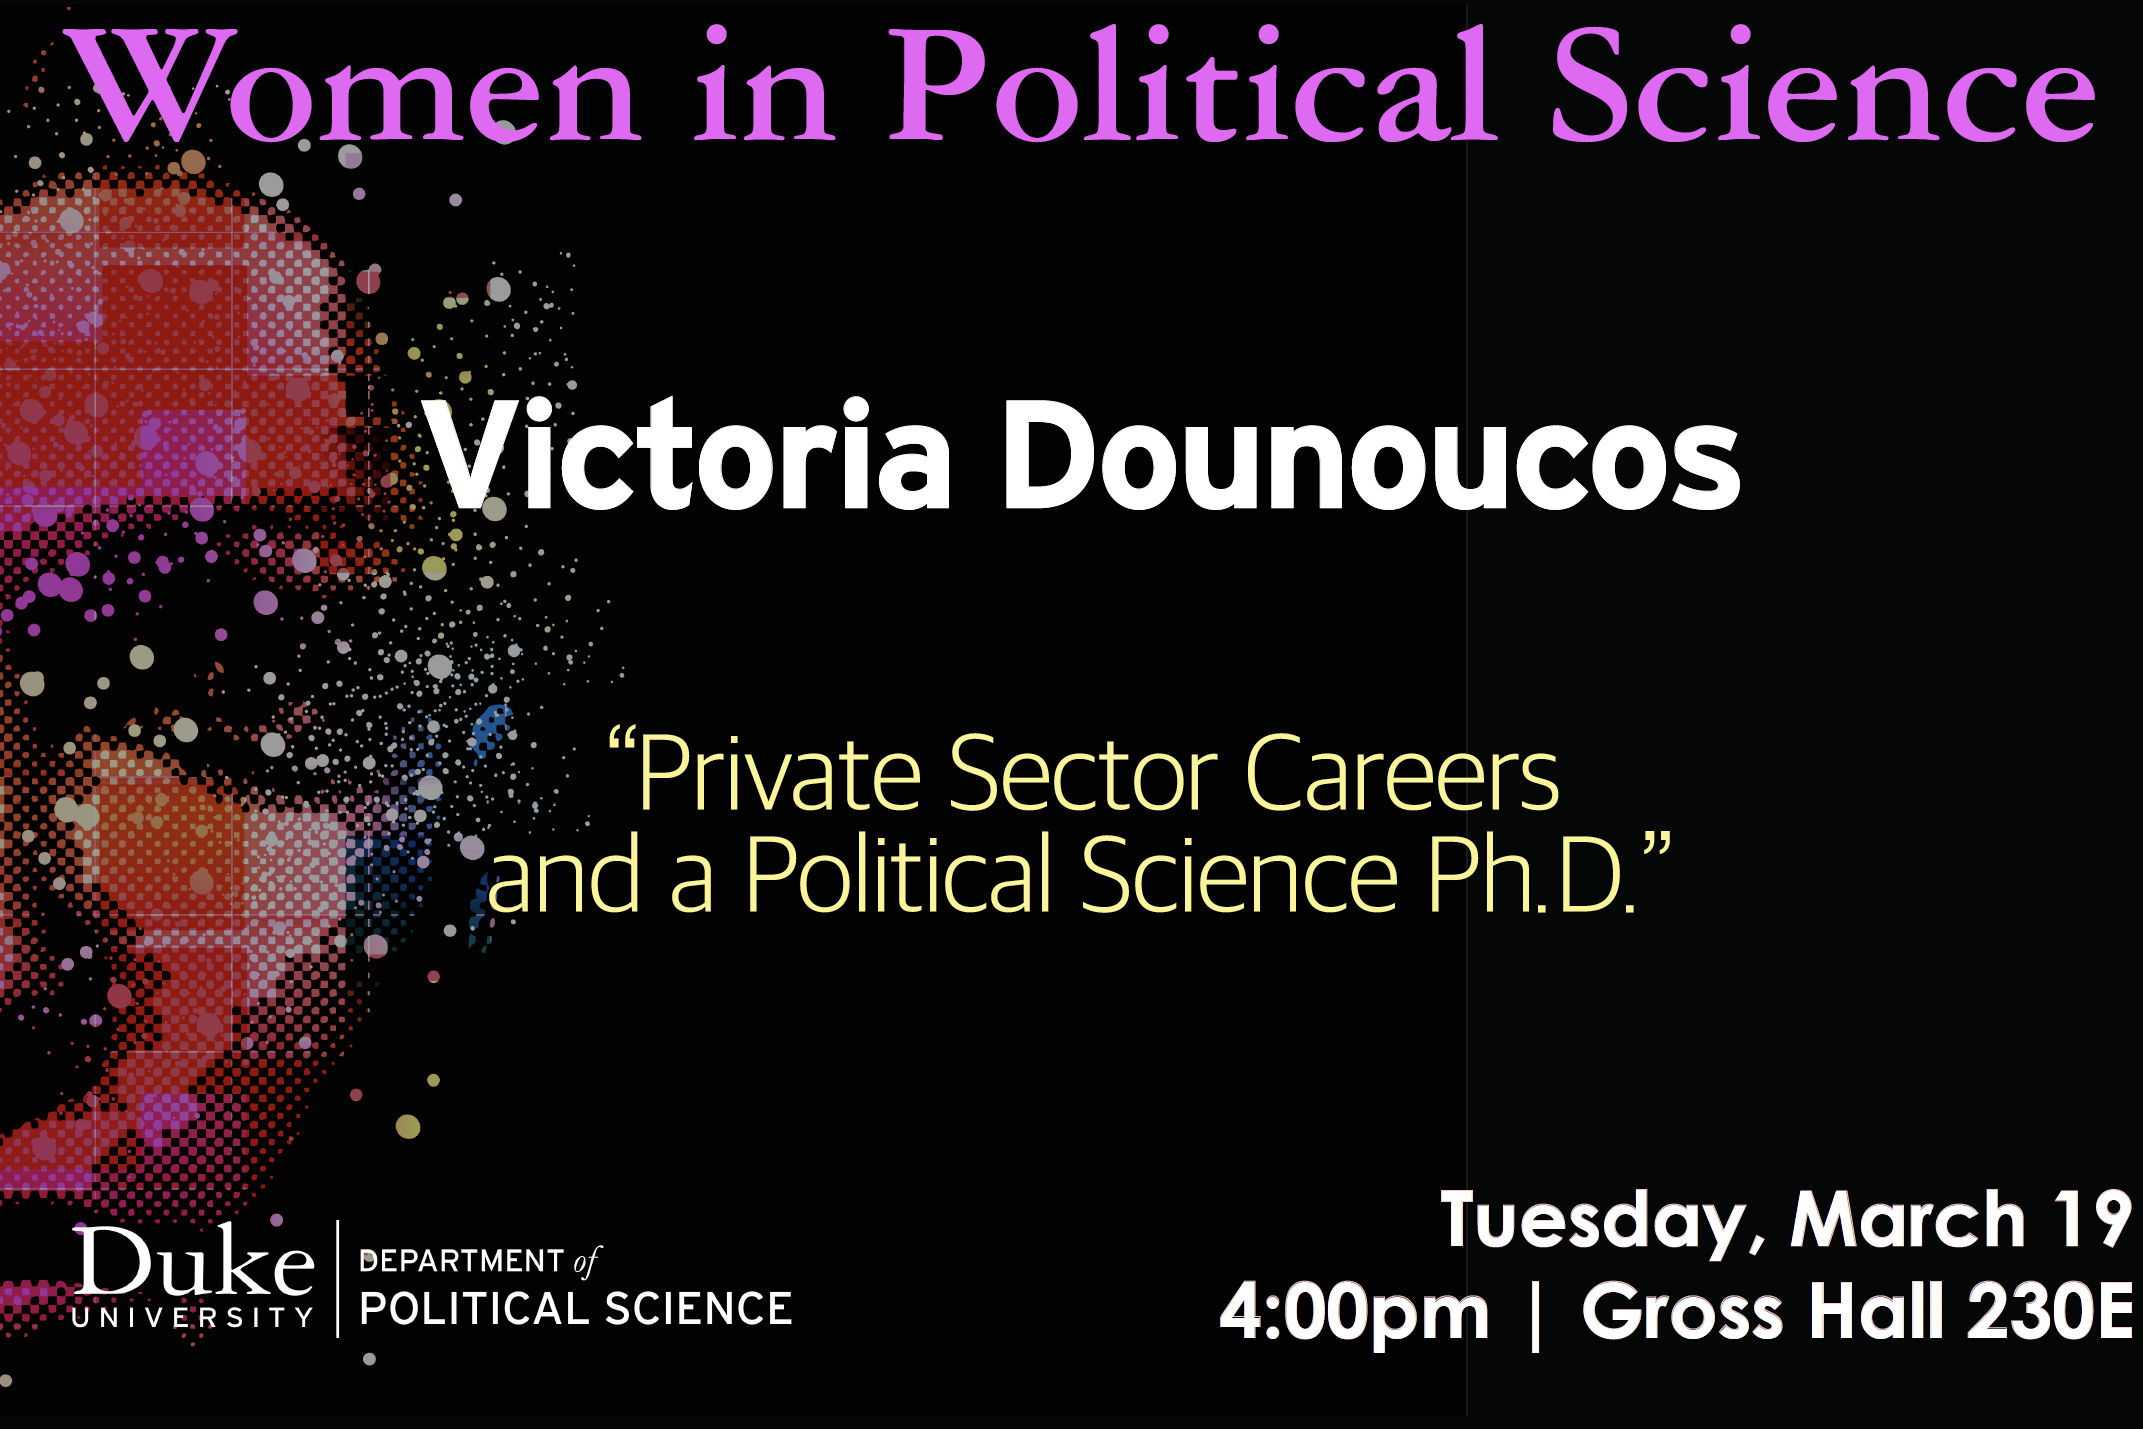 Women in Political Science flyer